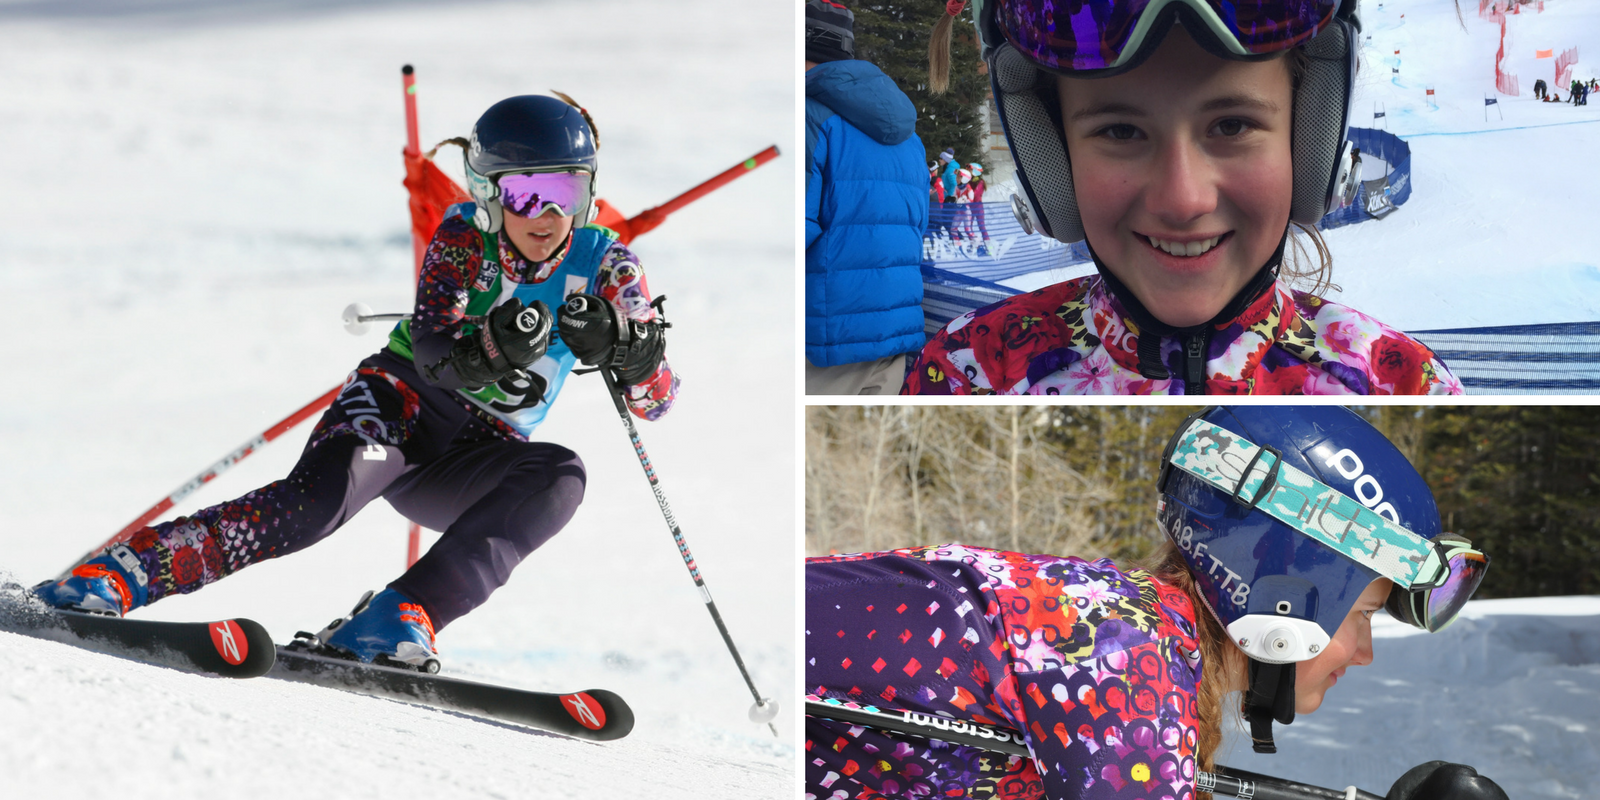 Snowbird Ski Team ski racer Emily Grace lives by the Mikaela Shiffrin mantra Always Be Faster Than the Boys (A.B.F.T.T.B.)